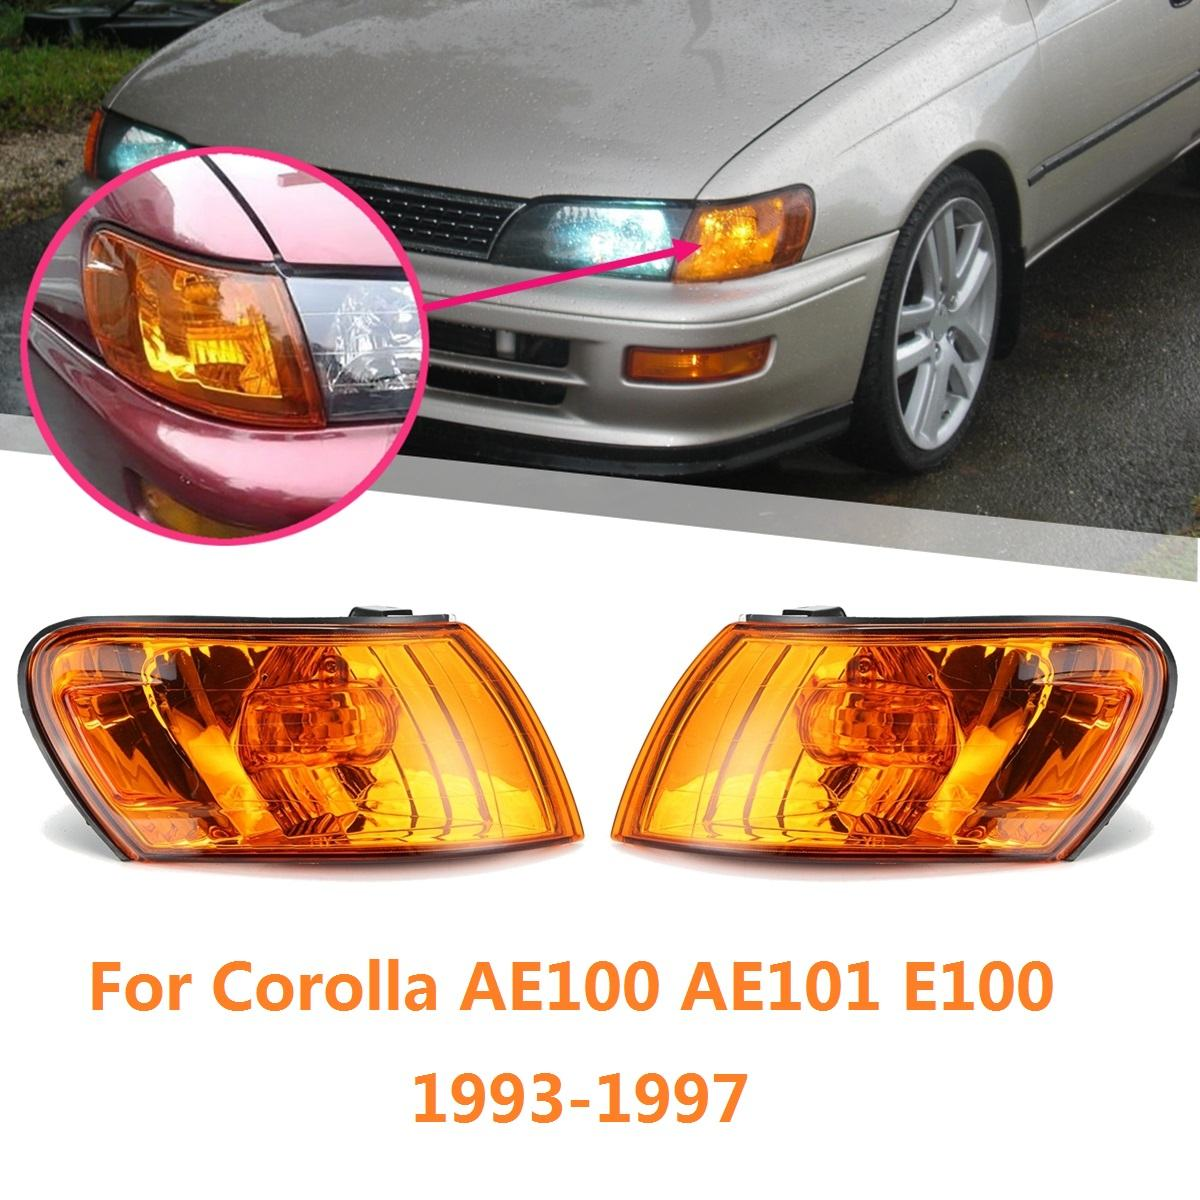 Pair Parking Corner Light Cover Amber Lens for <font><b>Toyota</b></font> Corolla AE100 <font><b>AE101</b></font> E100 1993 1994 1995 1996 1997 Signal Lamp Accessories image